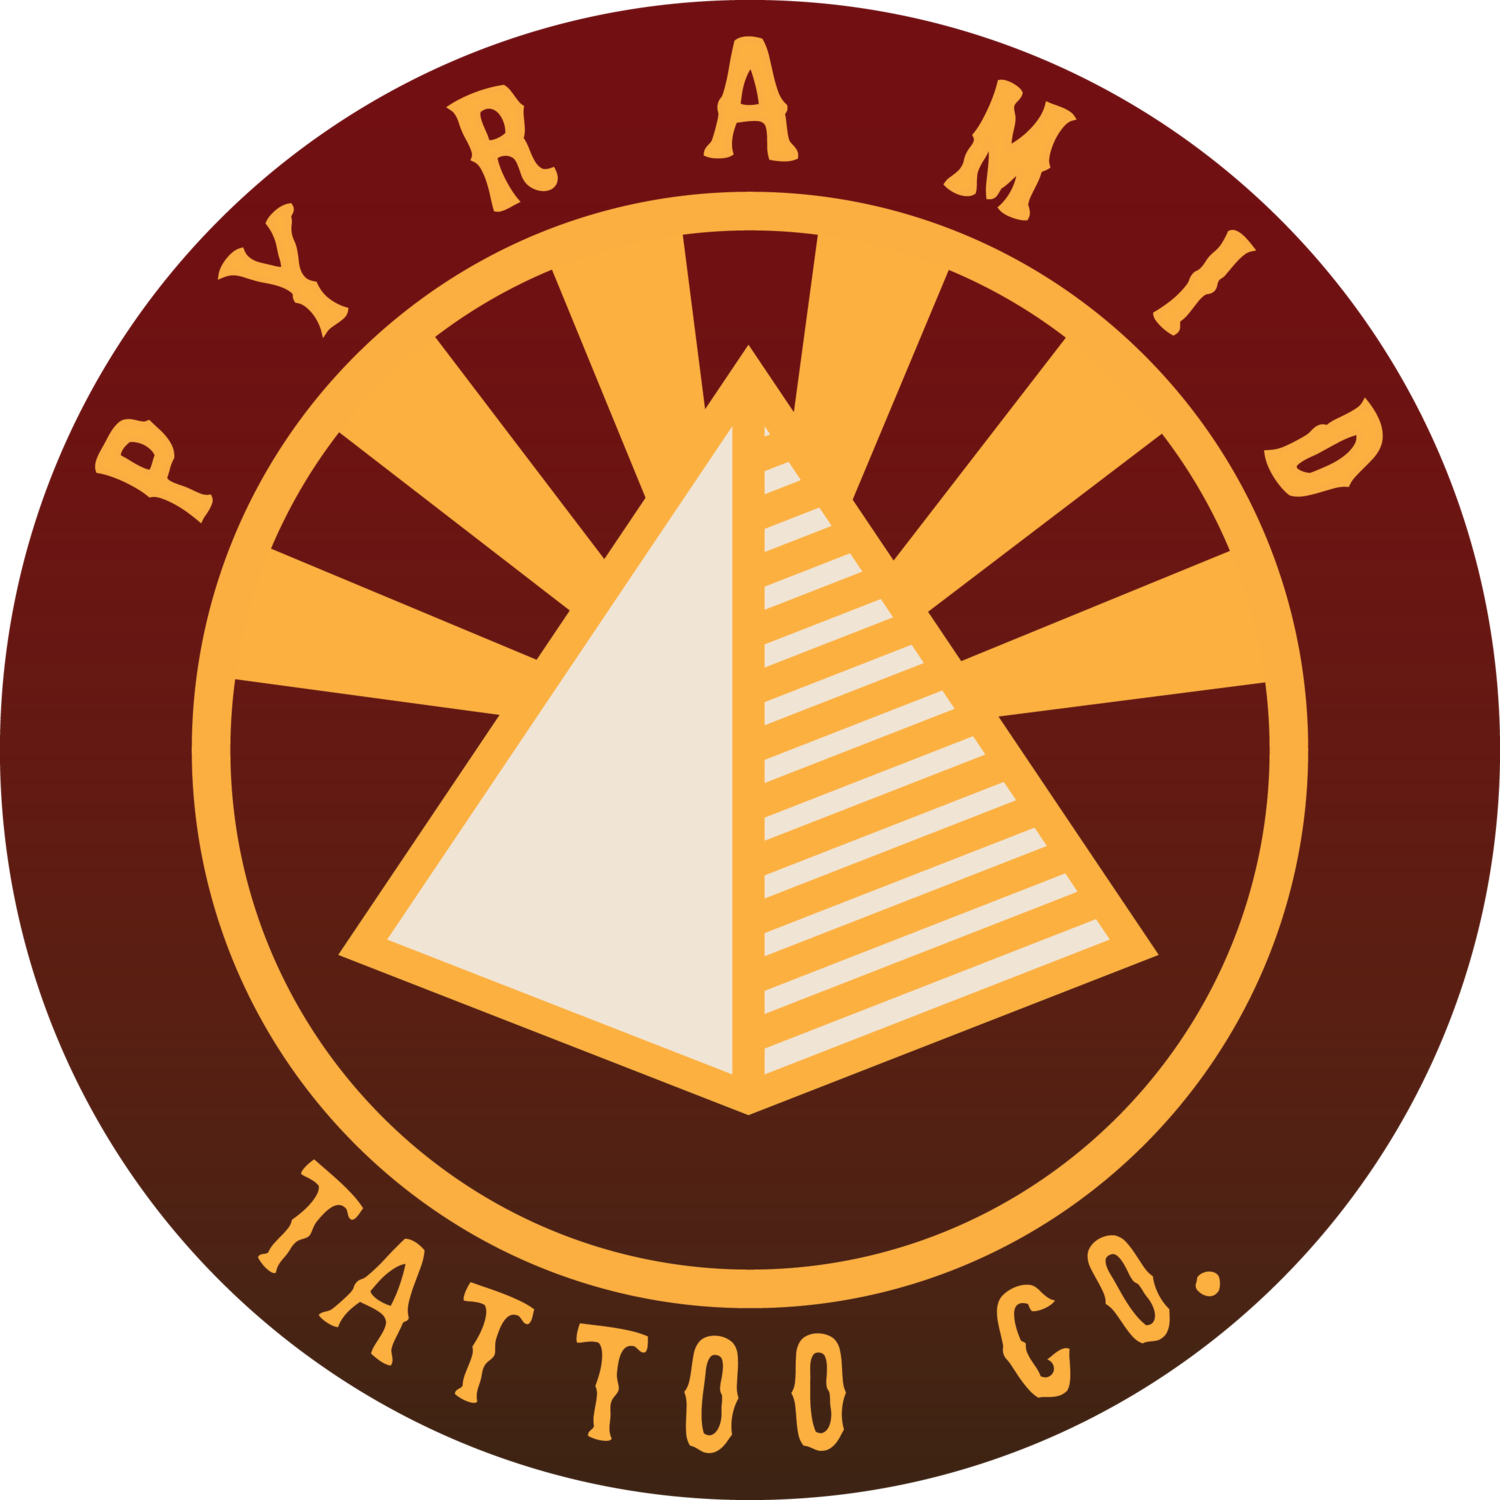 Pyramid Tattoo Company